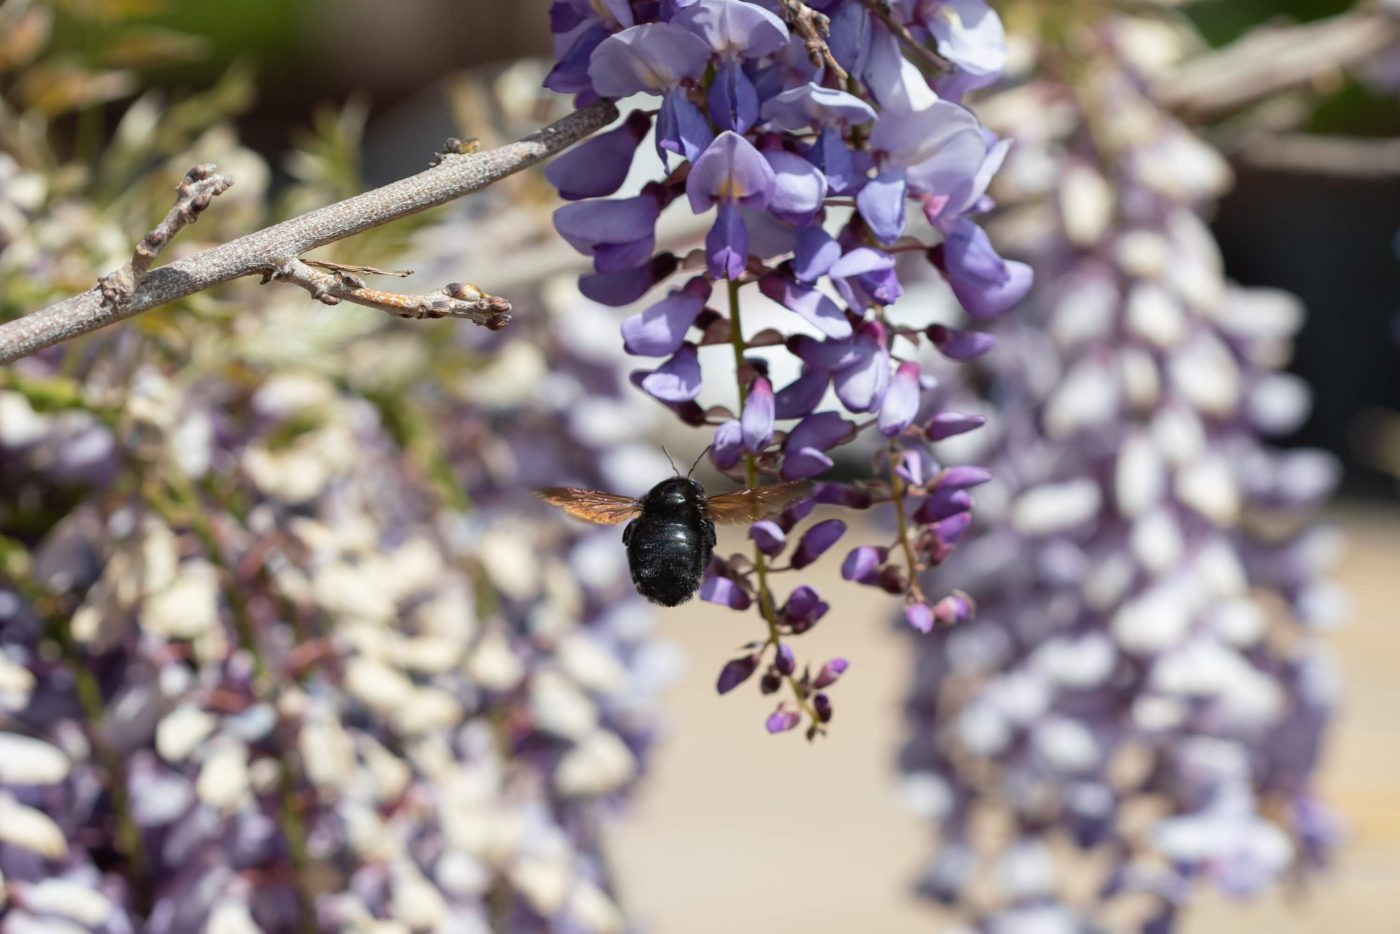 Hovering flying carpenter bee on wisteria